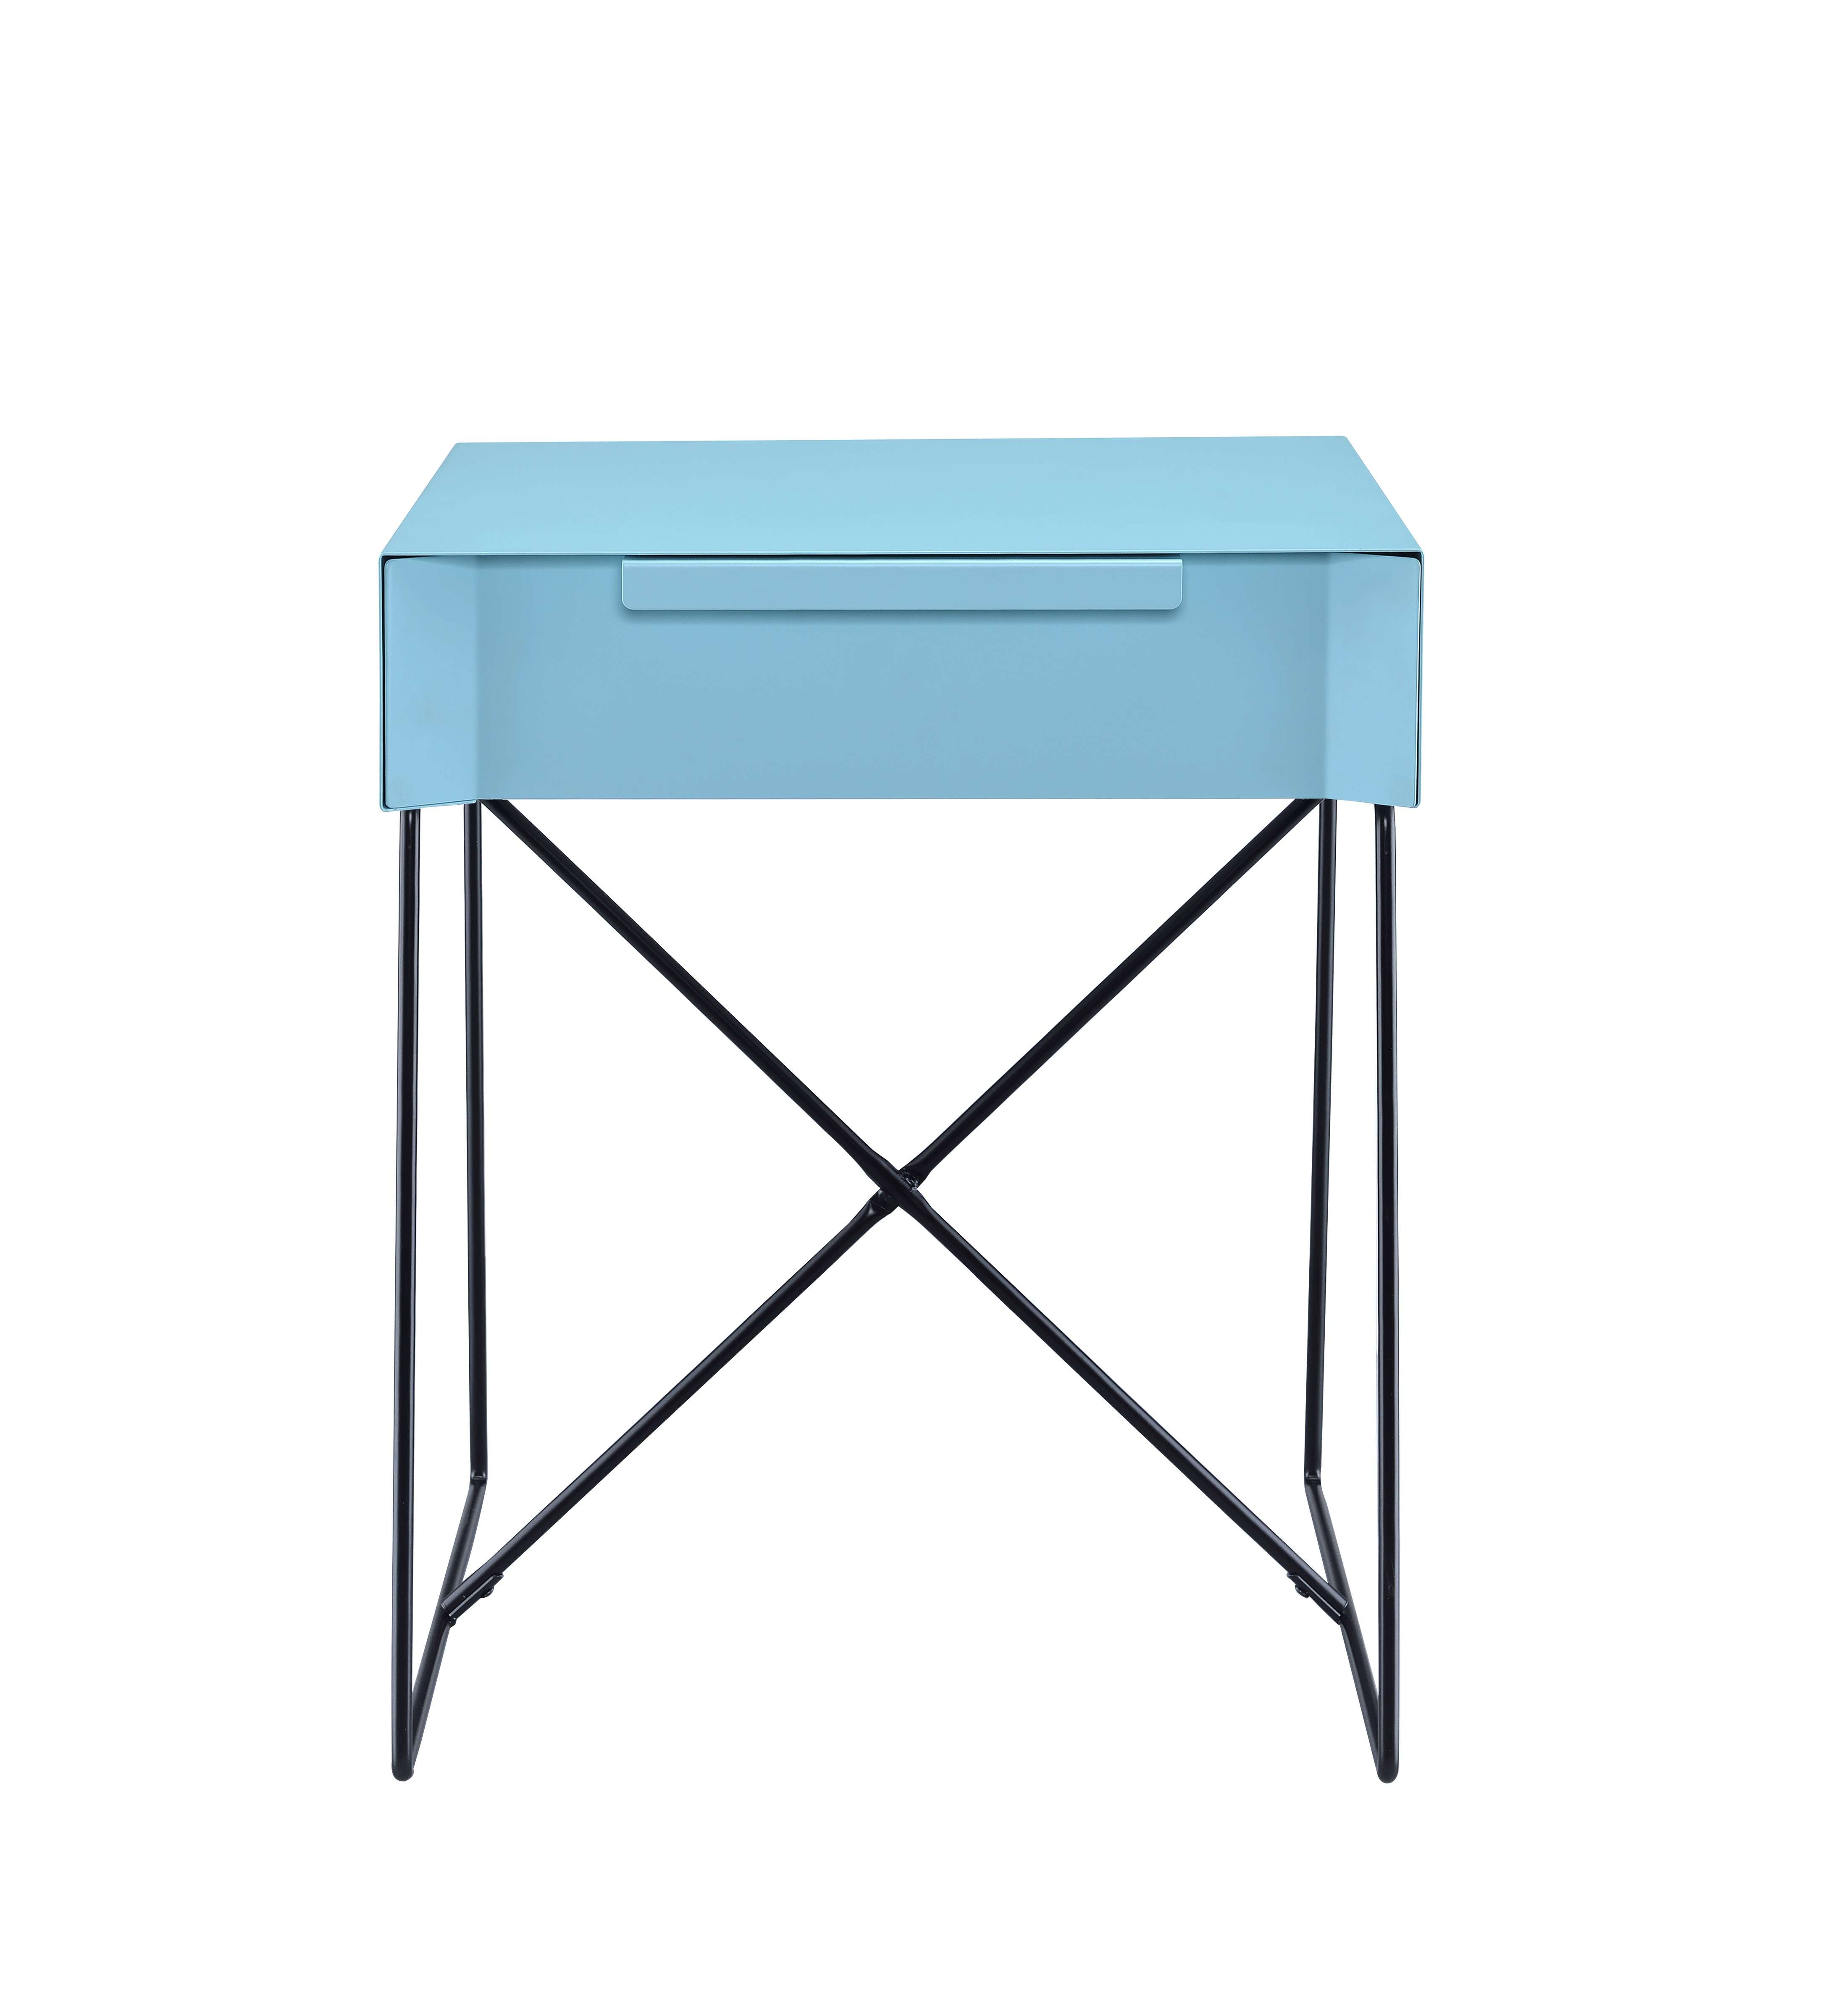 acme furniture gualacao light blue end table reviews goedekers long lexington mahogany fire pit dining set yellow sofa black and white vintage modern tables mid century bedroom